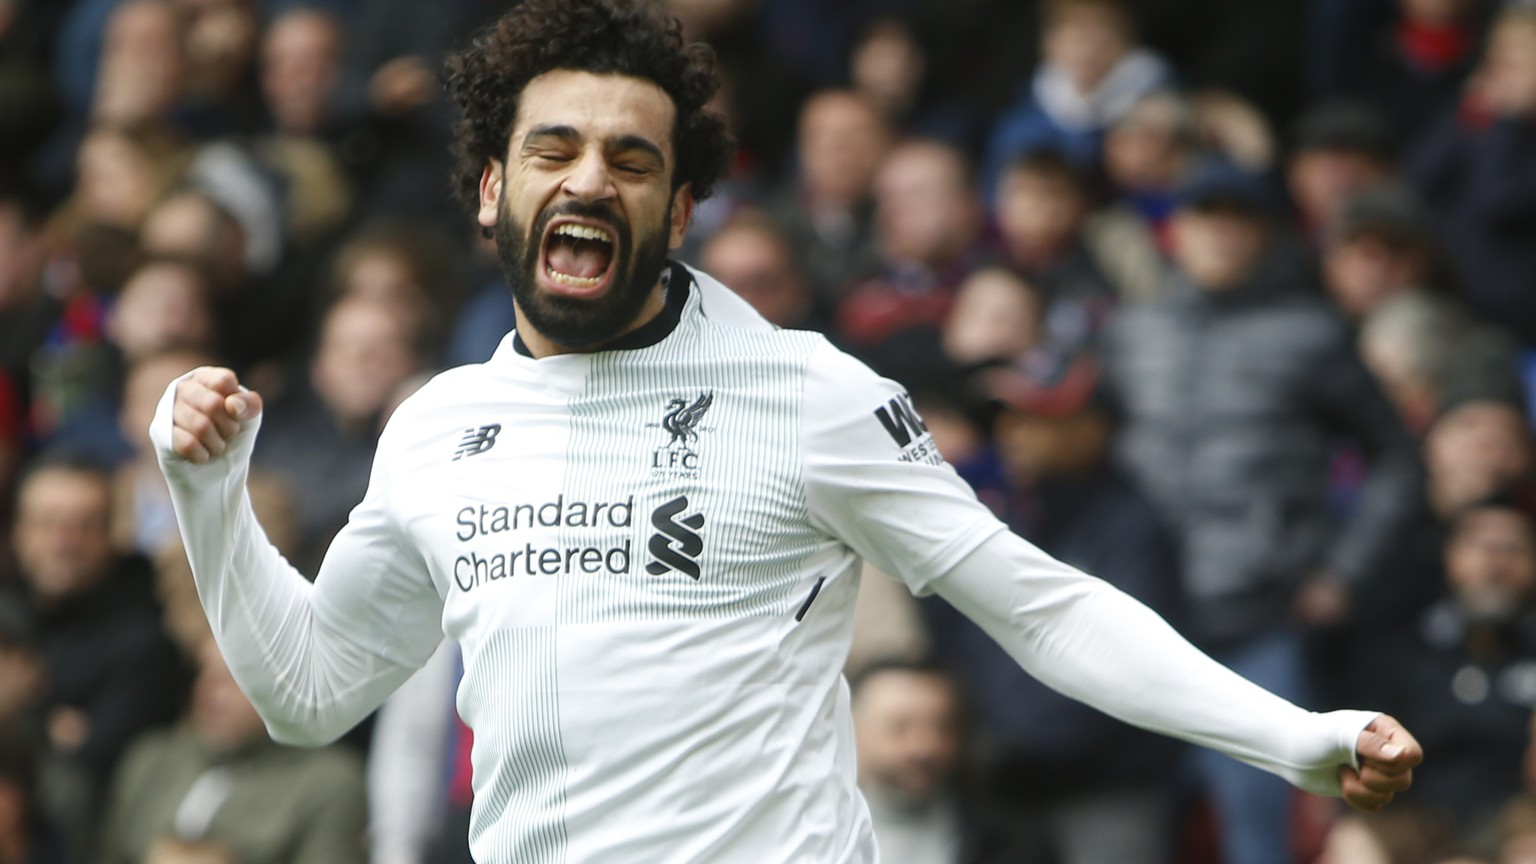 Liverpool's Mohamed Salah celebrates after scoring his side's second goal of the game, during the English Premier League soccer match between Crystal Palace and Liverpool at Selhurst Park stadium in London, Saturday, March, 31, 2018. Liverpool won the game 2-1. (AP Photo/Alastair Grant)